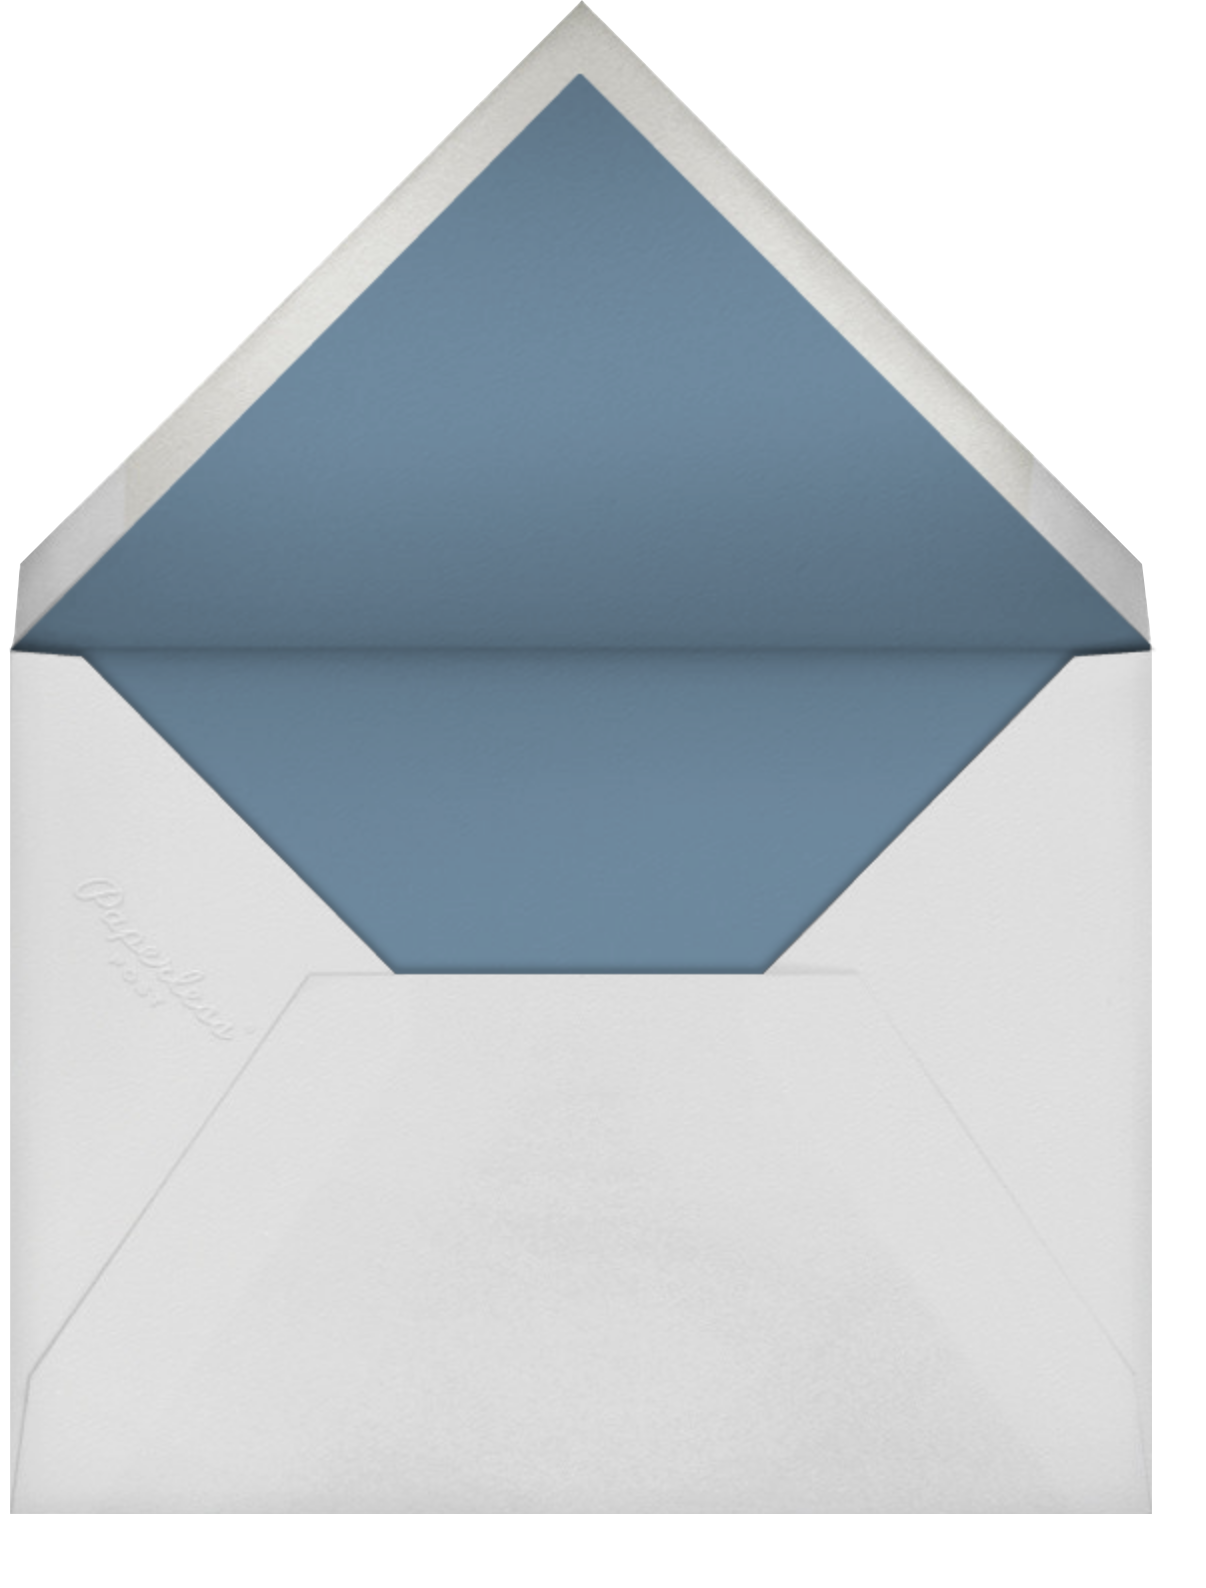 Beacon Hill - French Blue - Paperless Post - Personalized stationery - envelope back